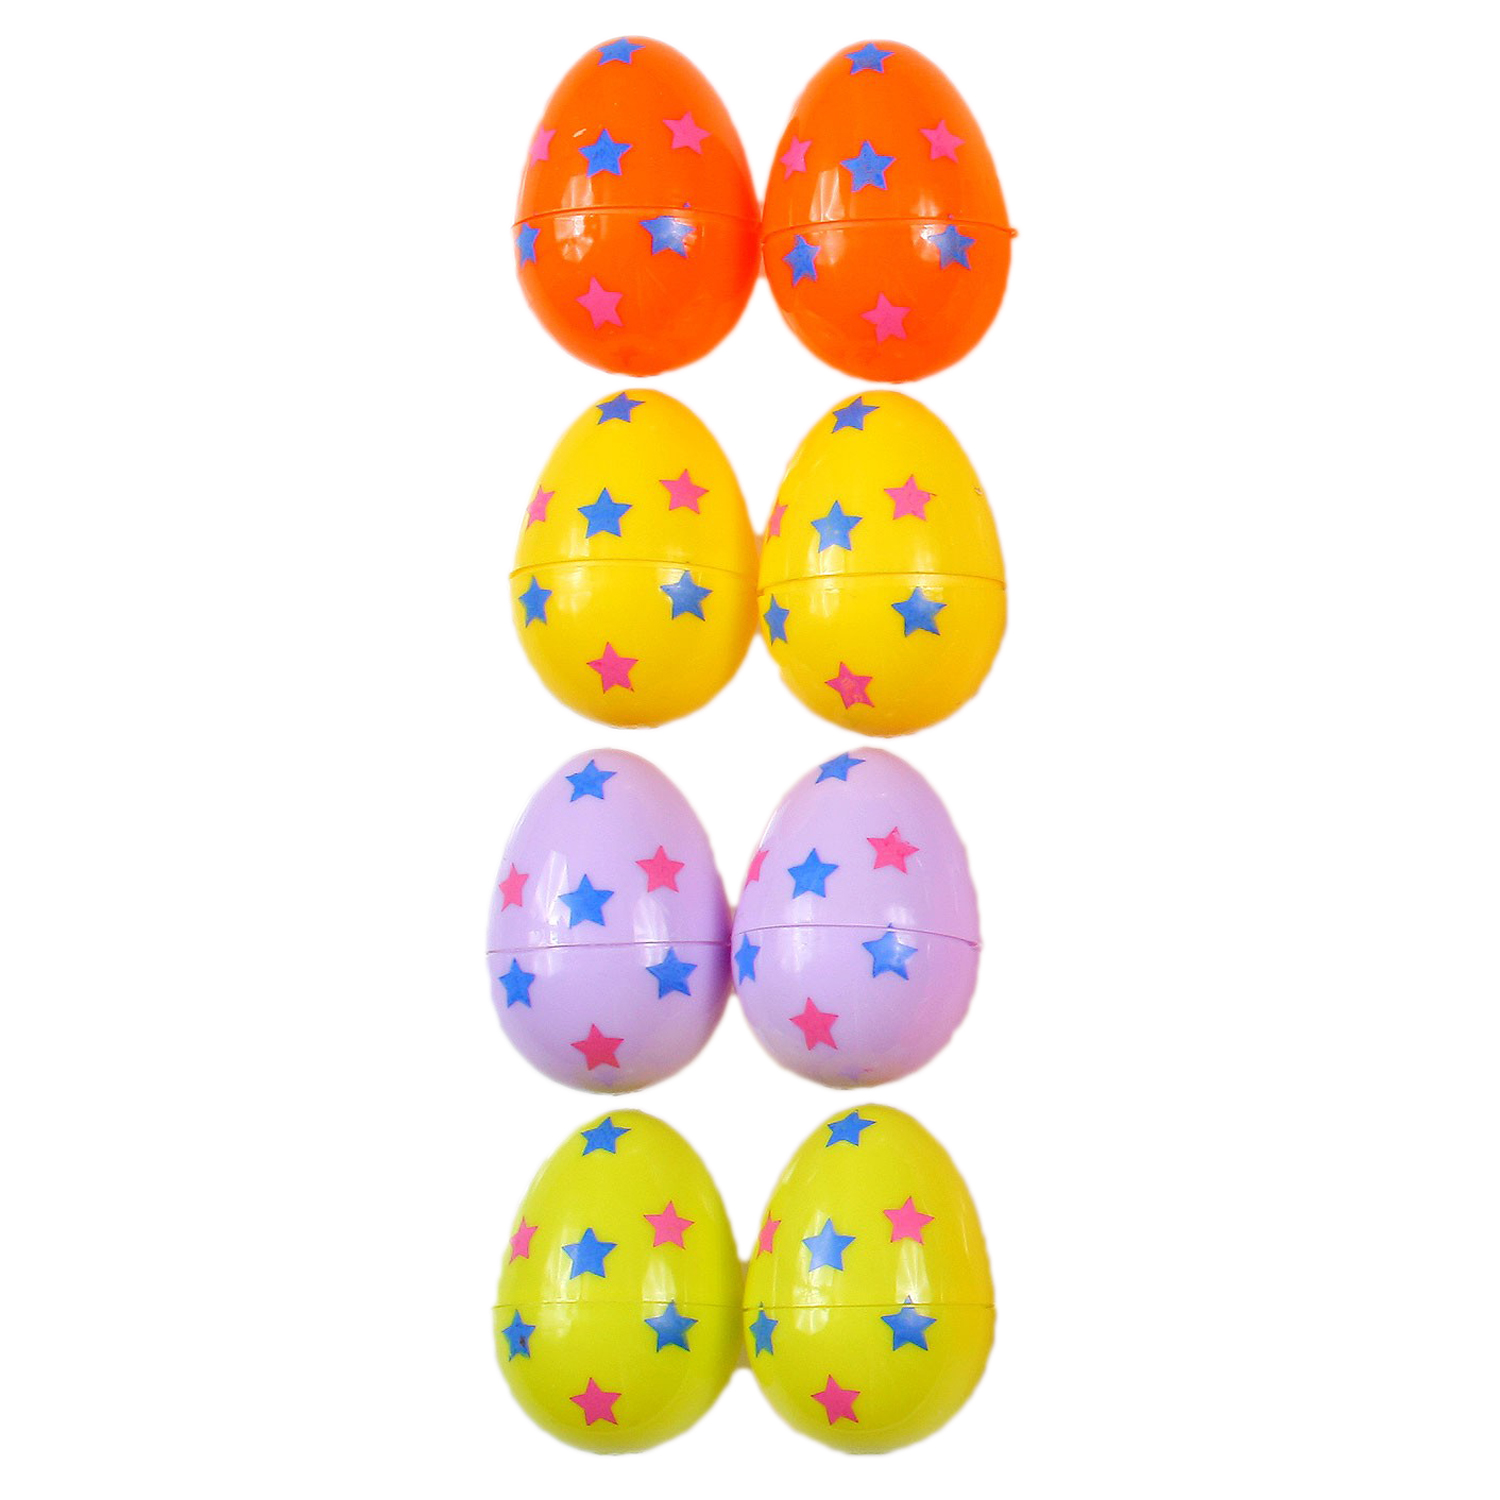 """Decorated Design Fillable Plastic Easter Eggs, 2.5"""", Assorted Colors, 8 Pack"""